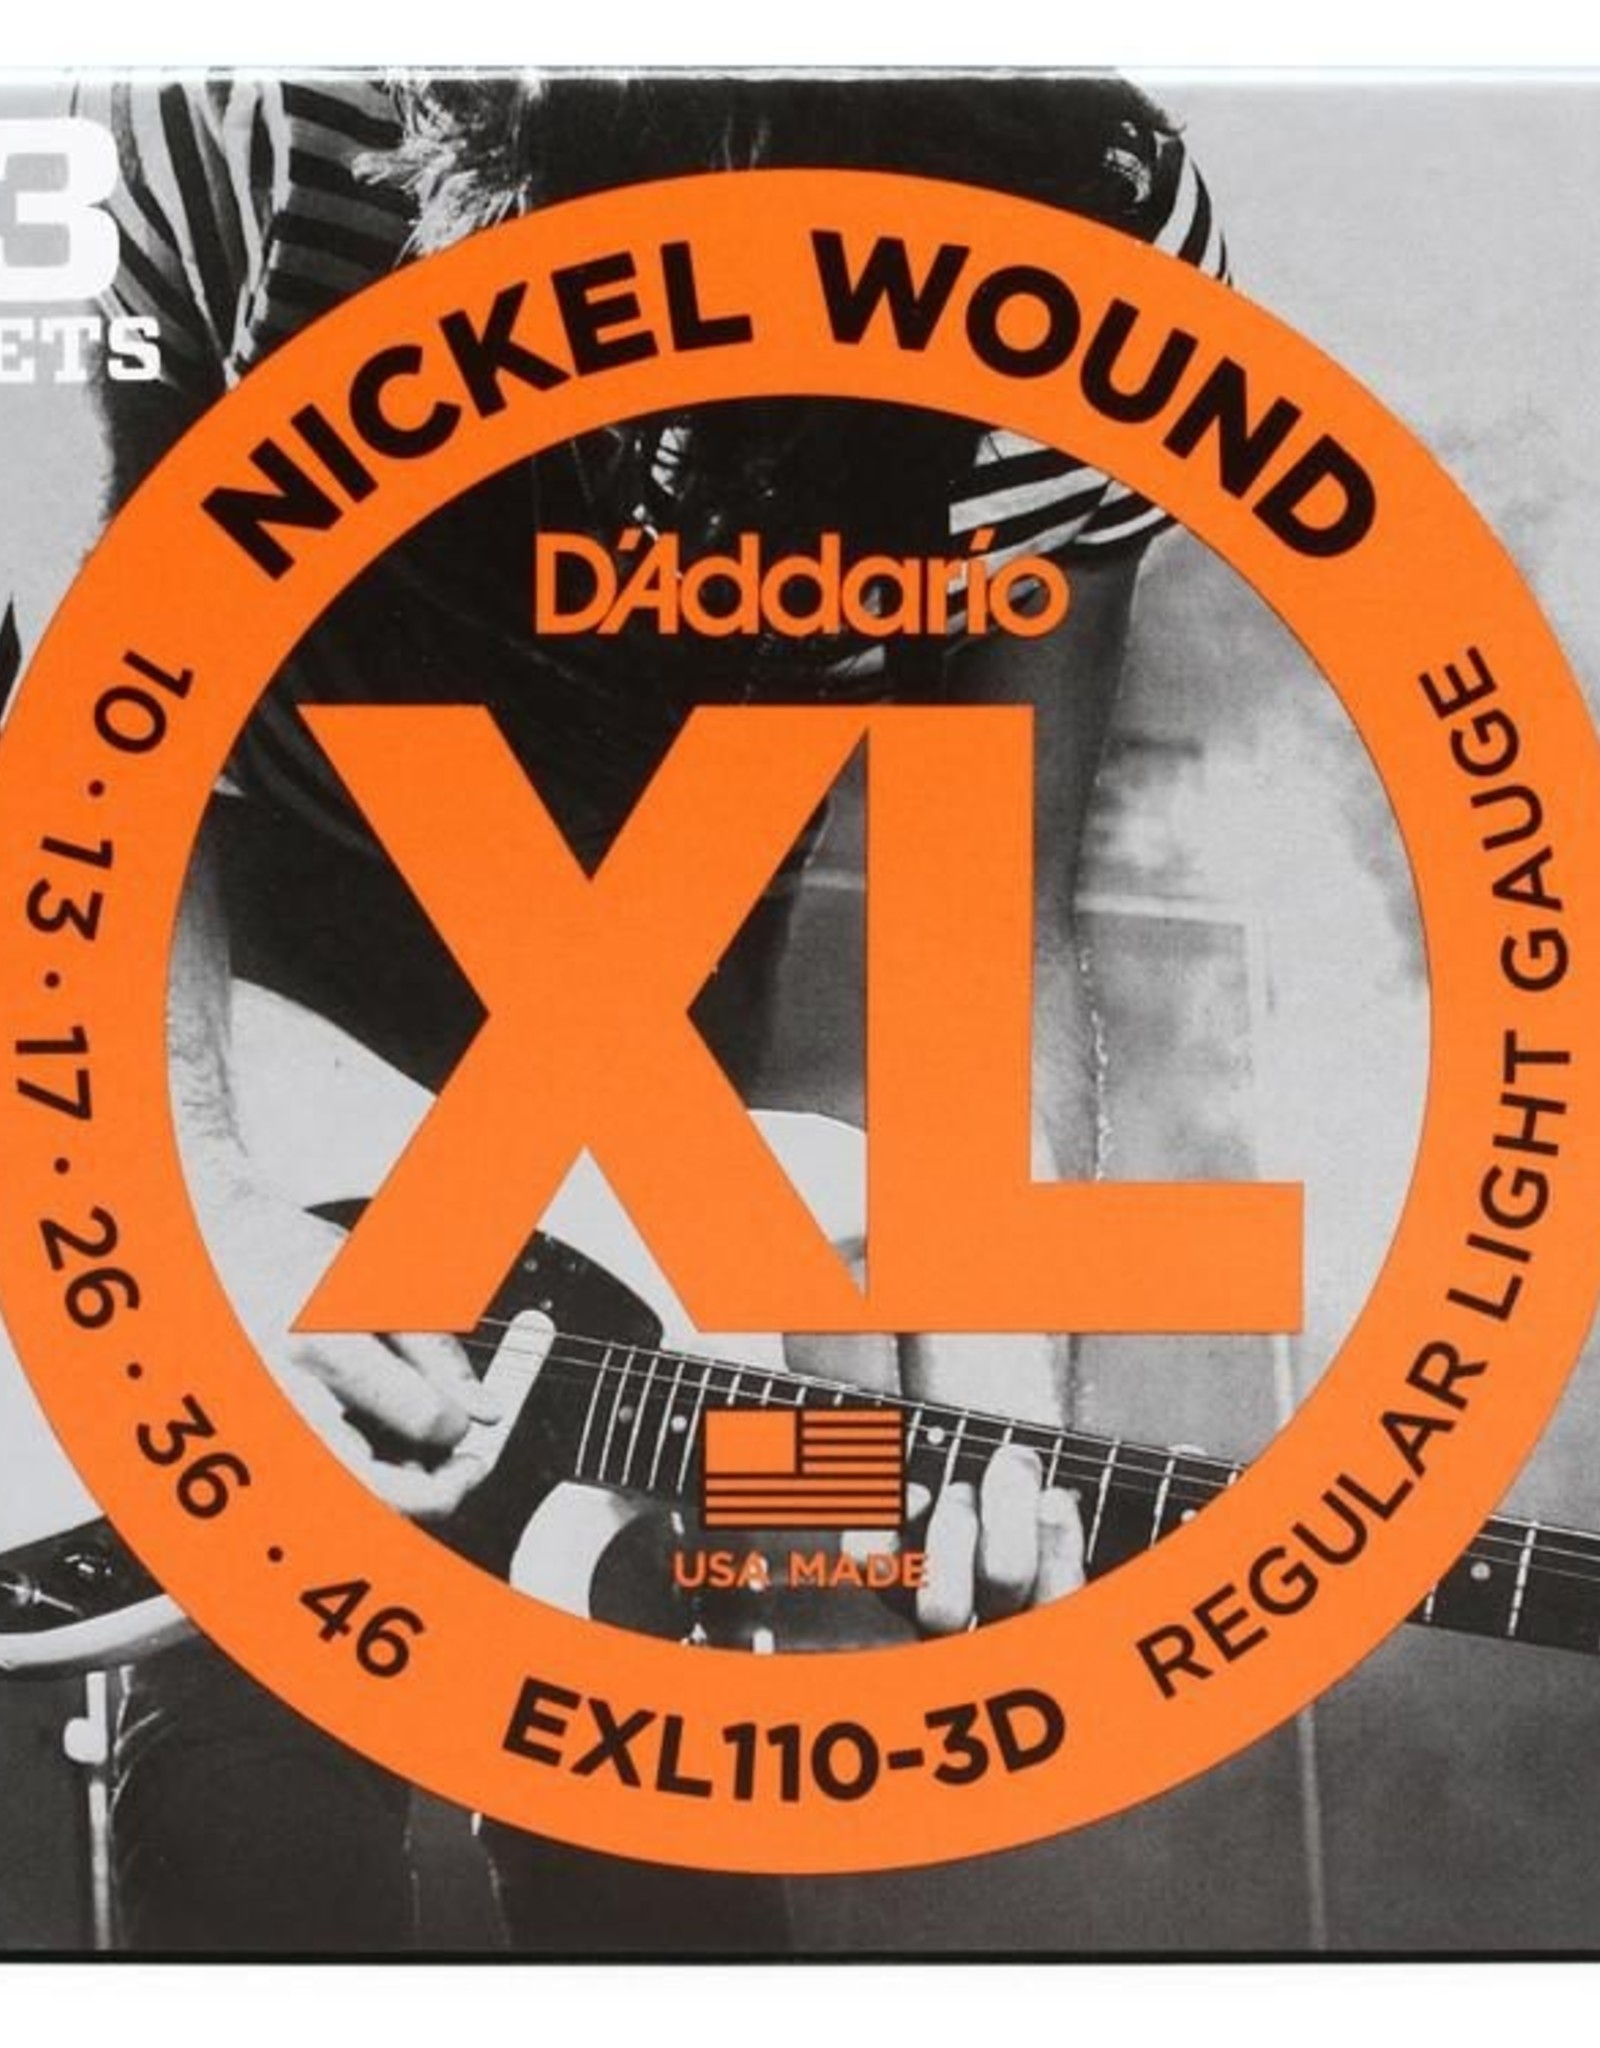 D'Addario D'addario EXL110 3D, 3-Pack Electric Guitar Strings